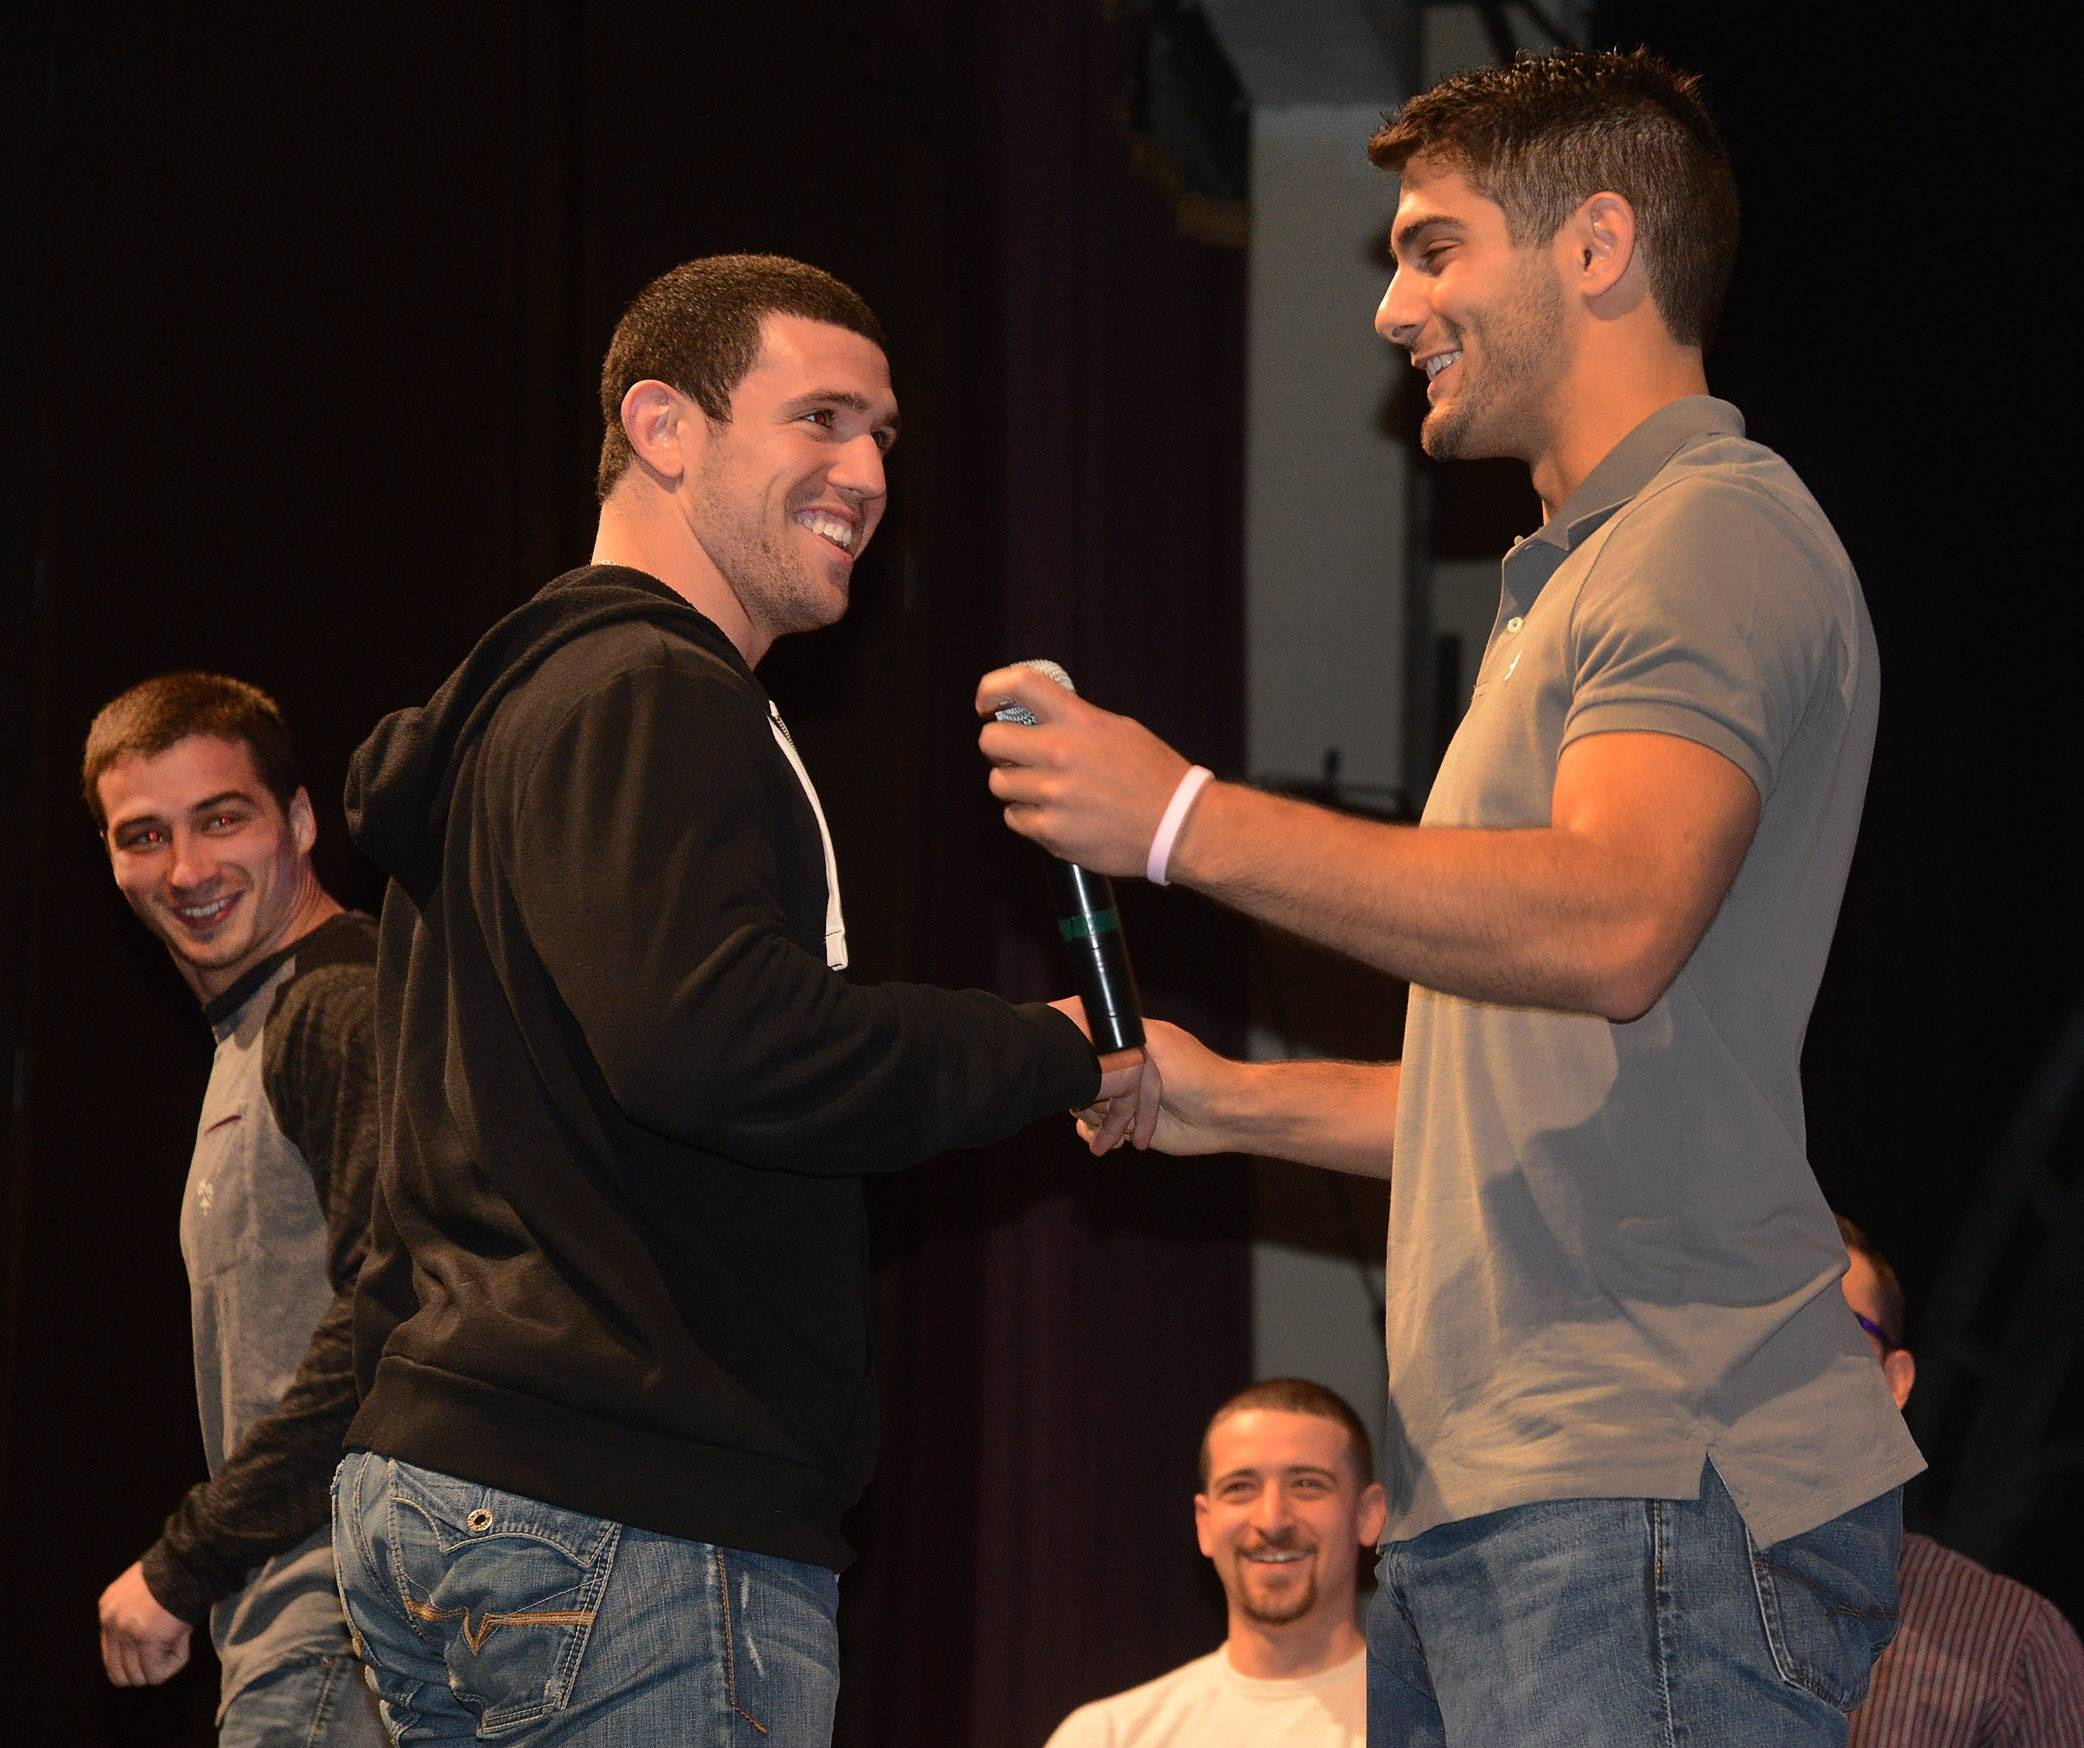 NFL quarterback prospect Jimmy Garappolo shakes hands with former teammate Tony Taibi.